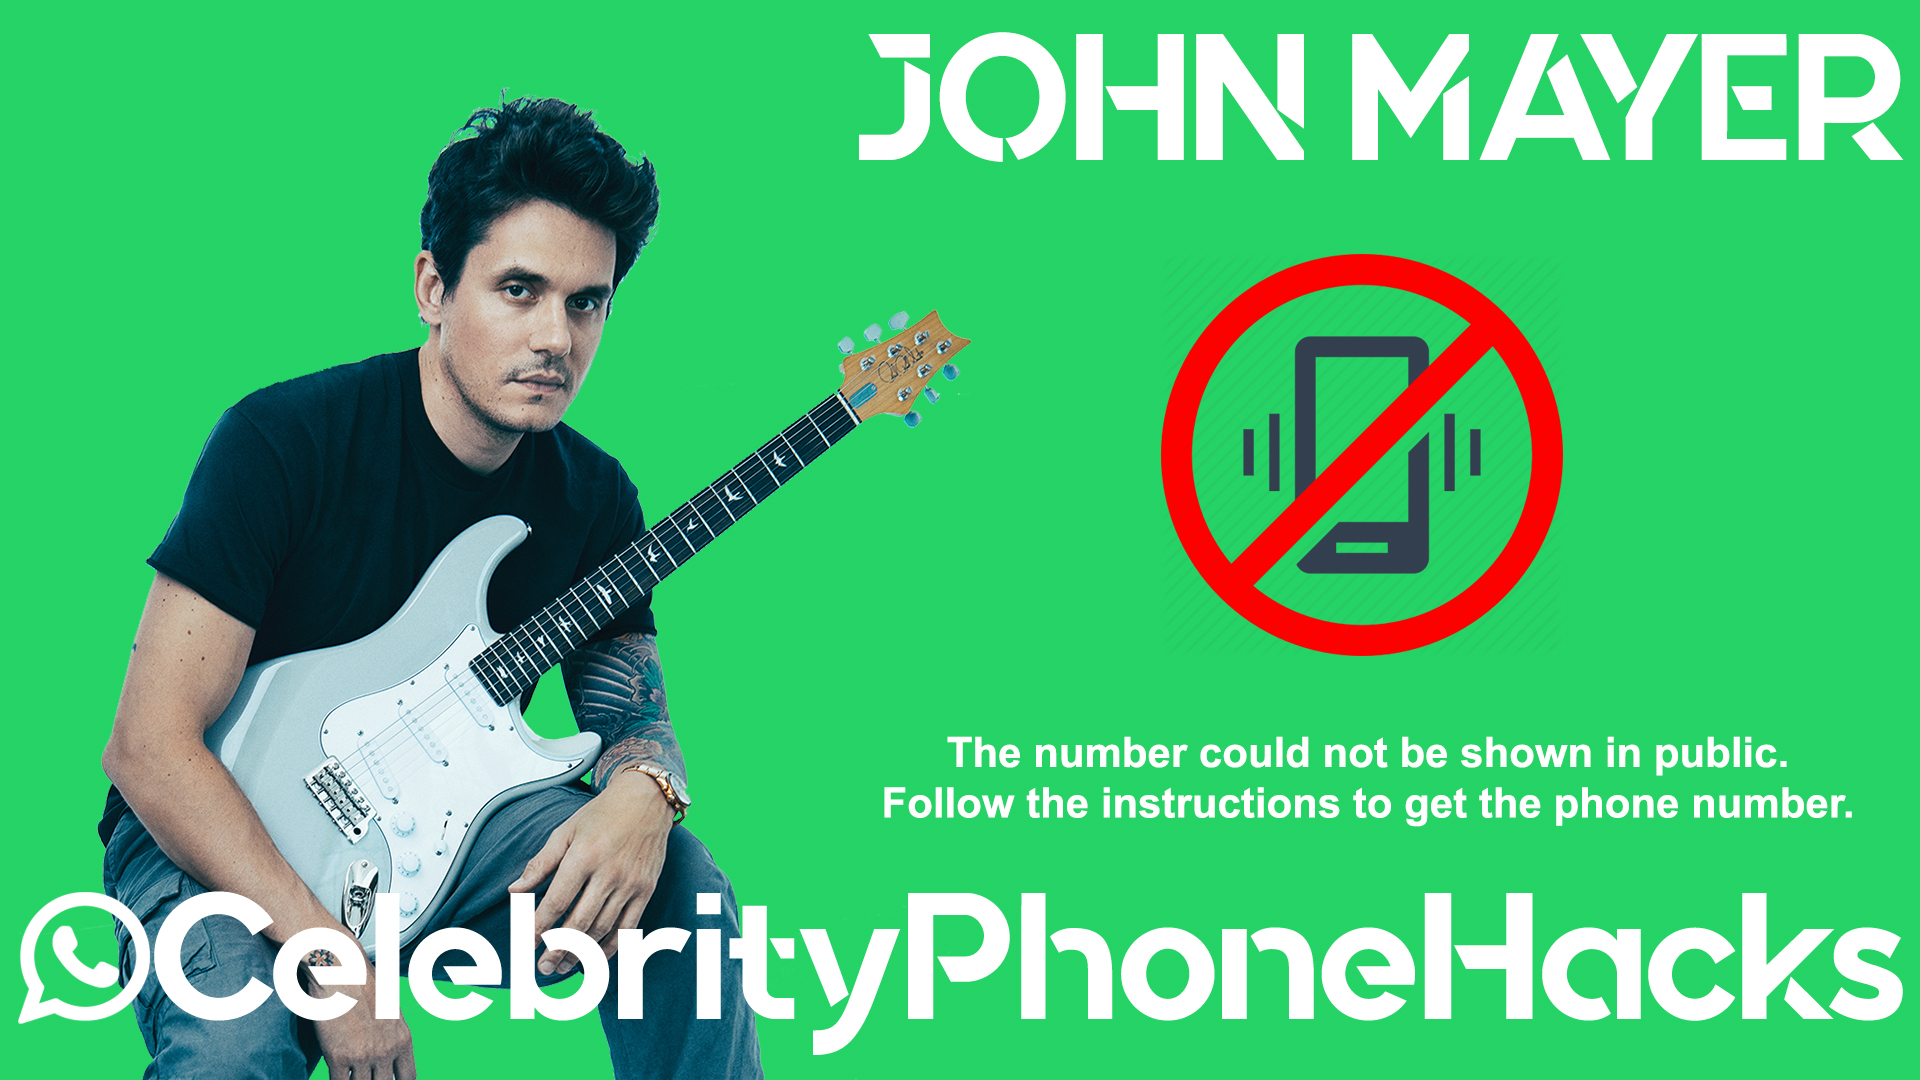 John Mayer real phone number 2019 whatsapp hacked leaked